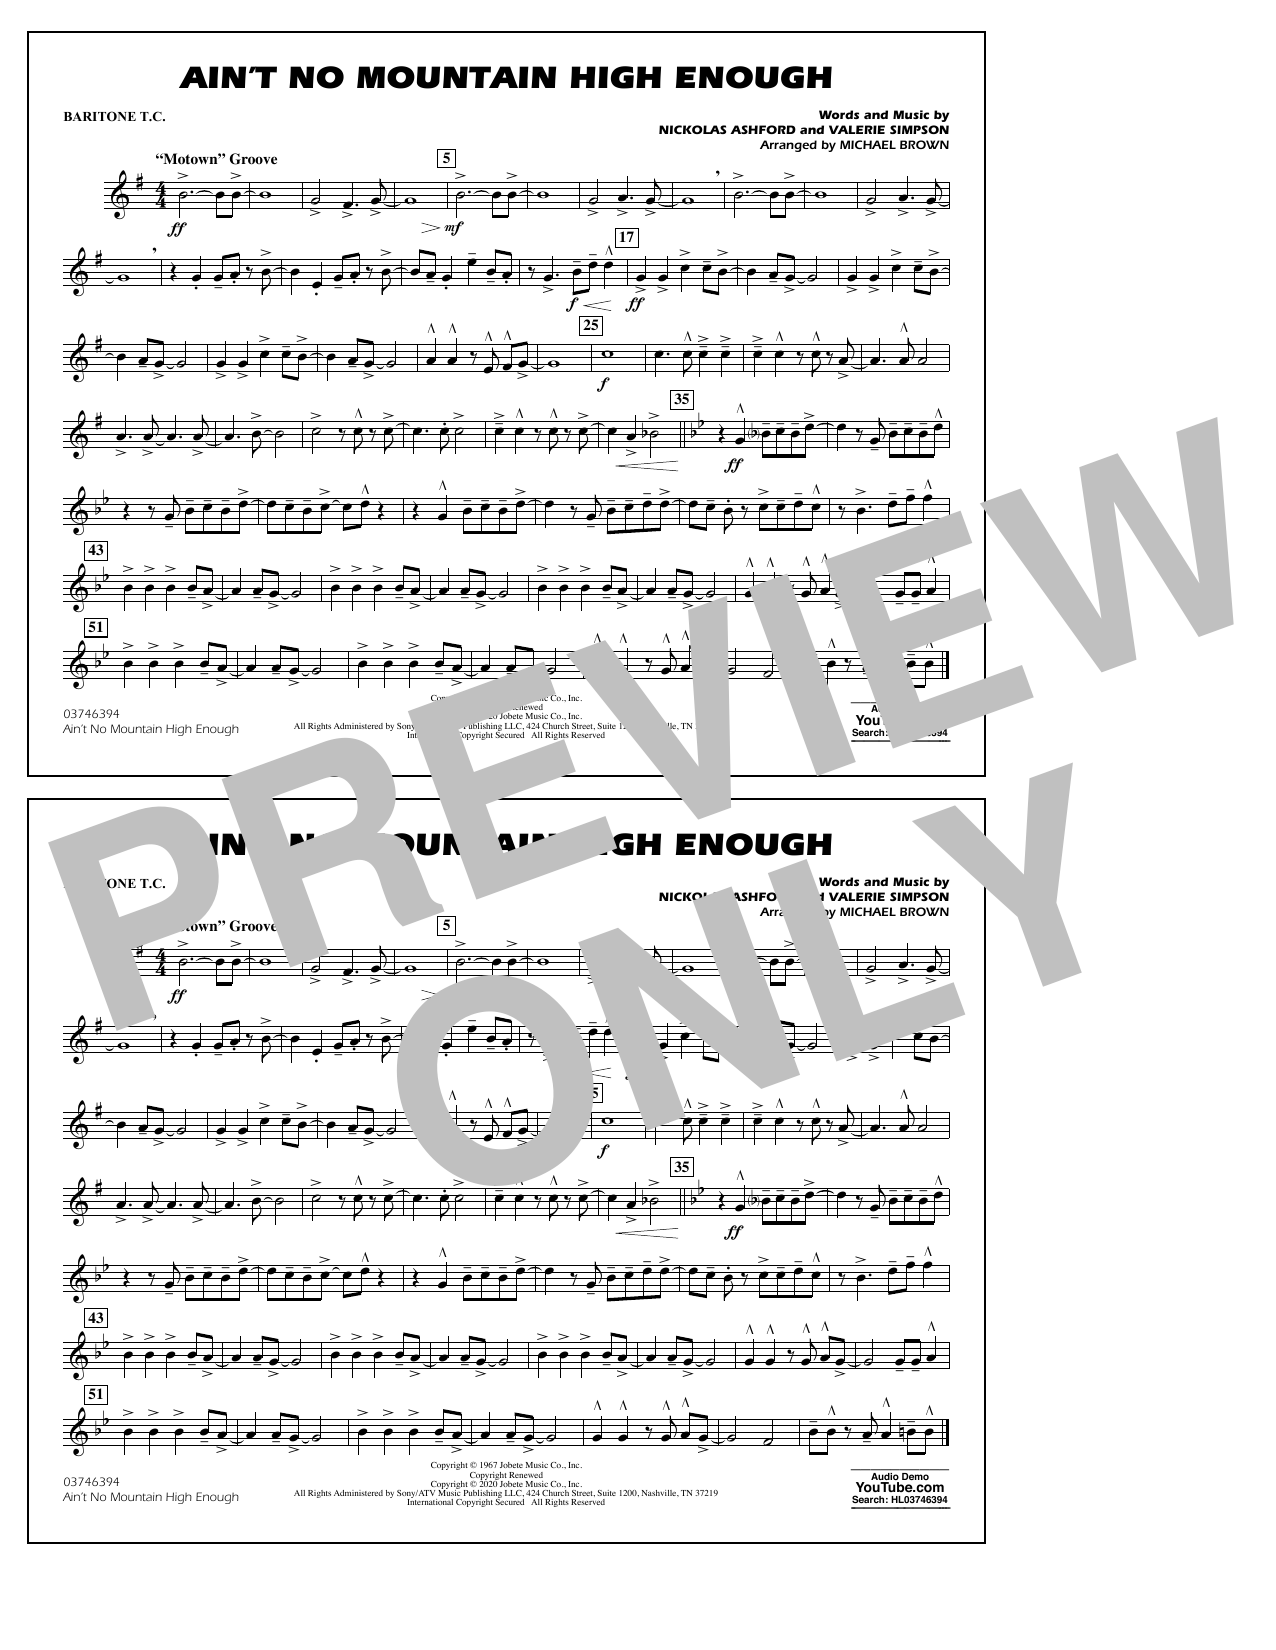 Ain't No Mountain High Enough (arr. Michael Brown) - Baritone T.C. Sheet Music